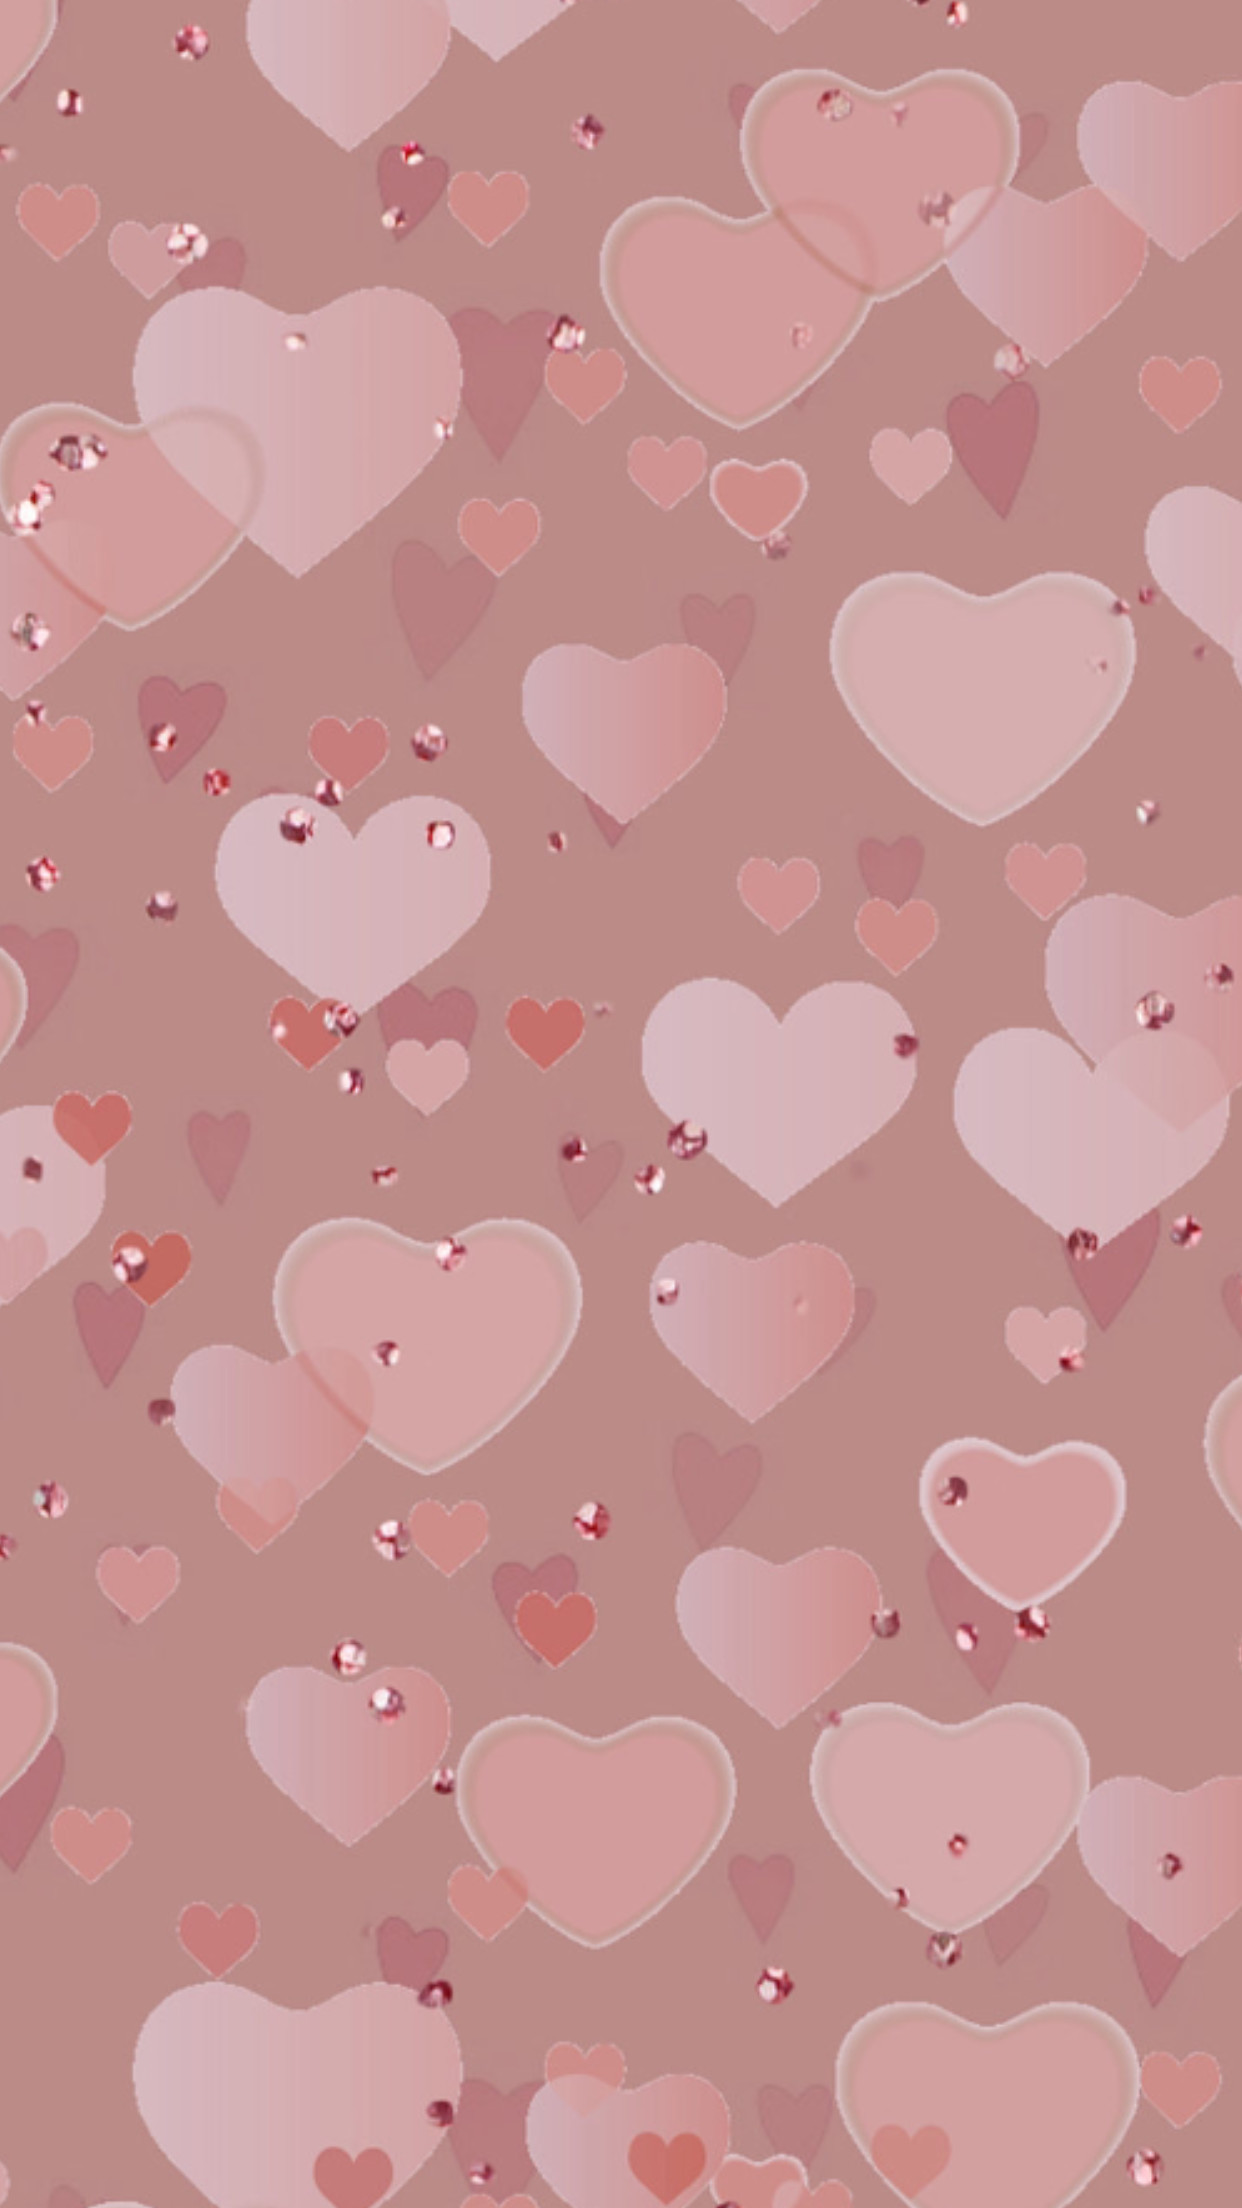 1242x2208 Pink heart wallpaper #GlitterFondos